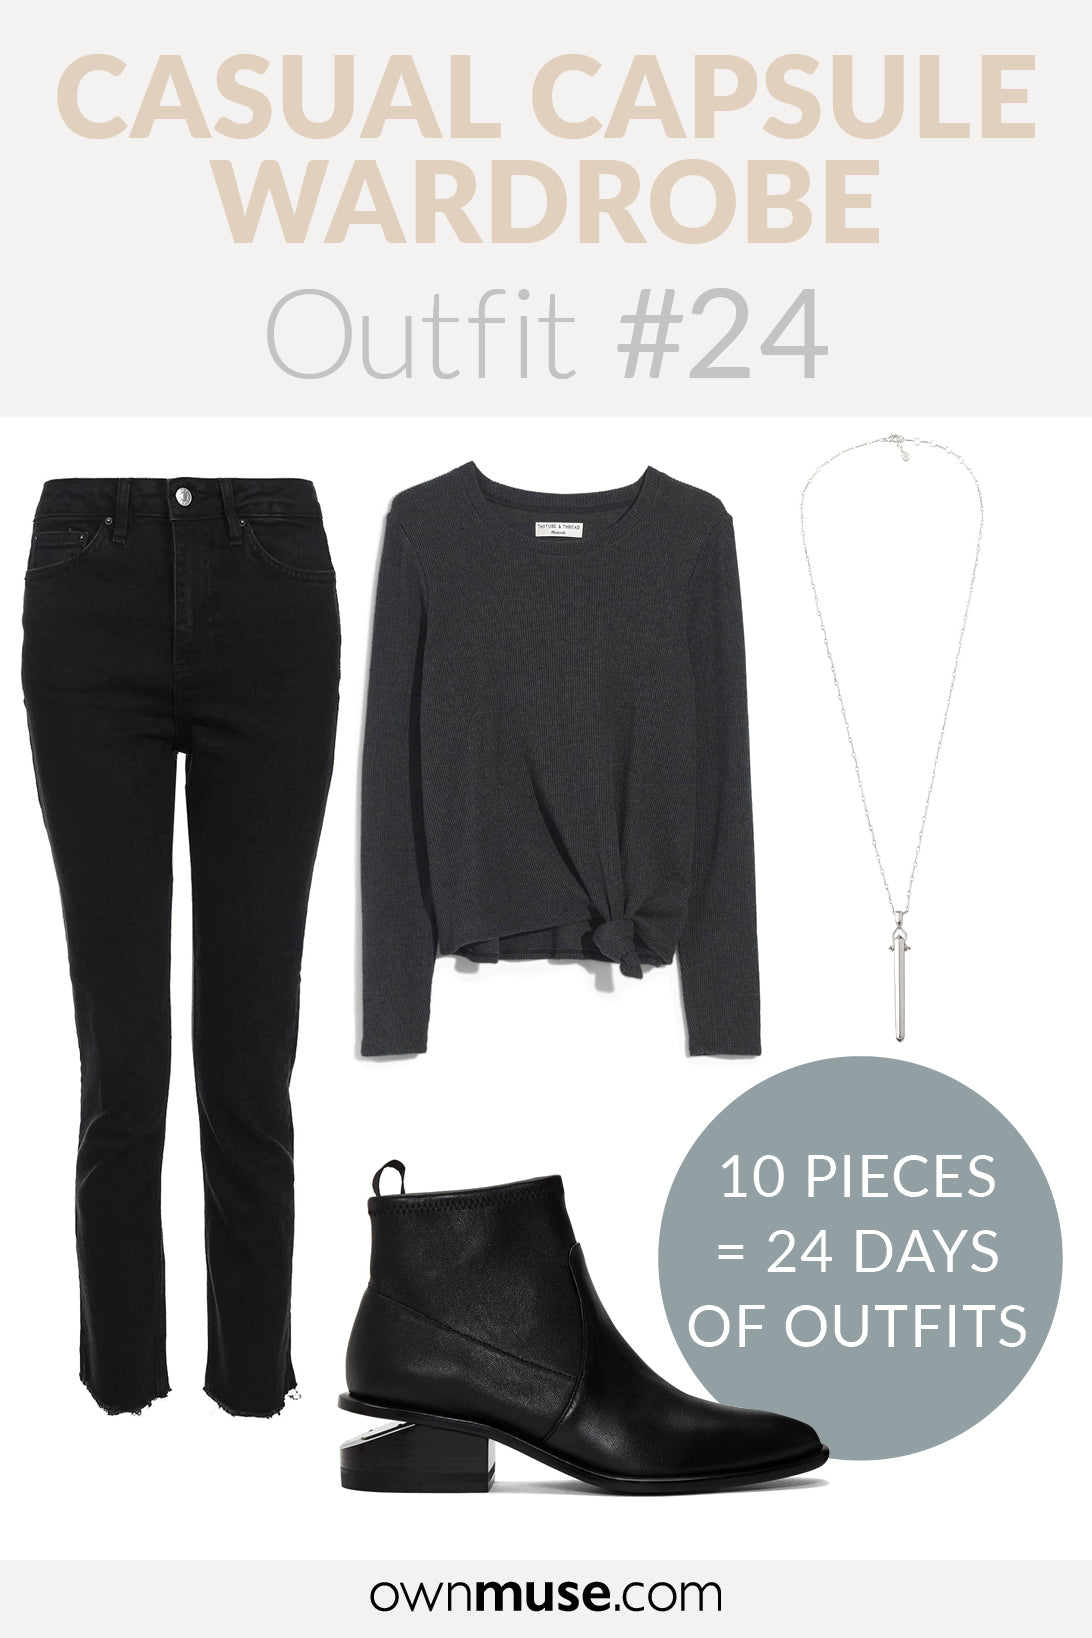 Day wear outfit inspiration - Capsule Wardrobe